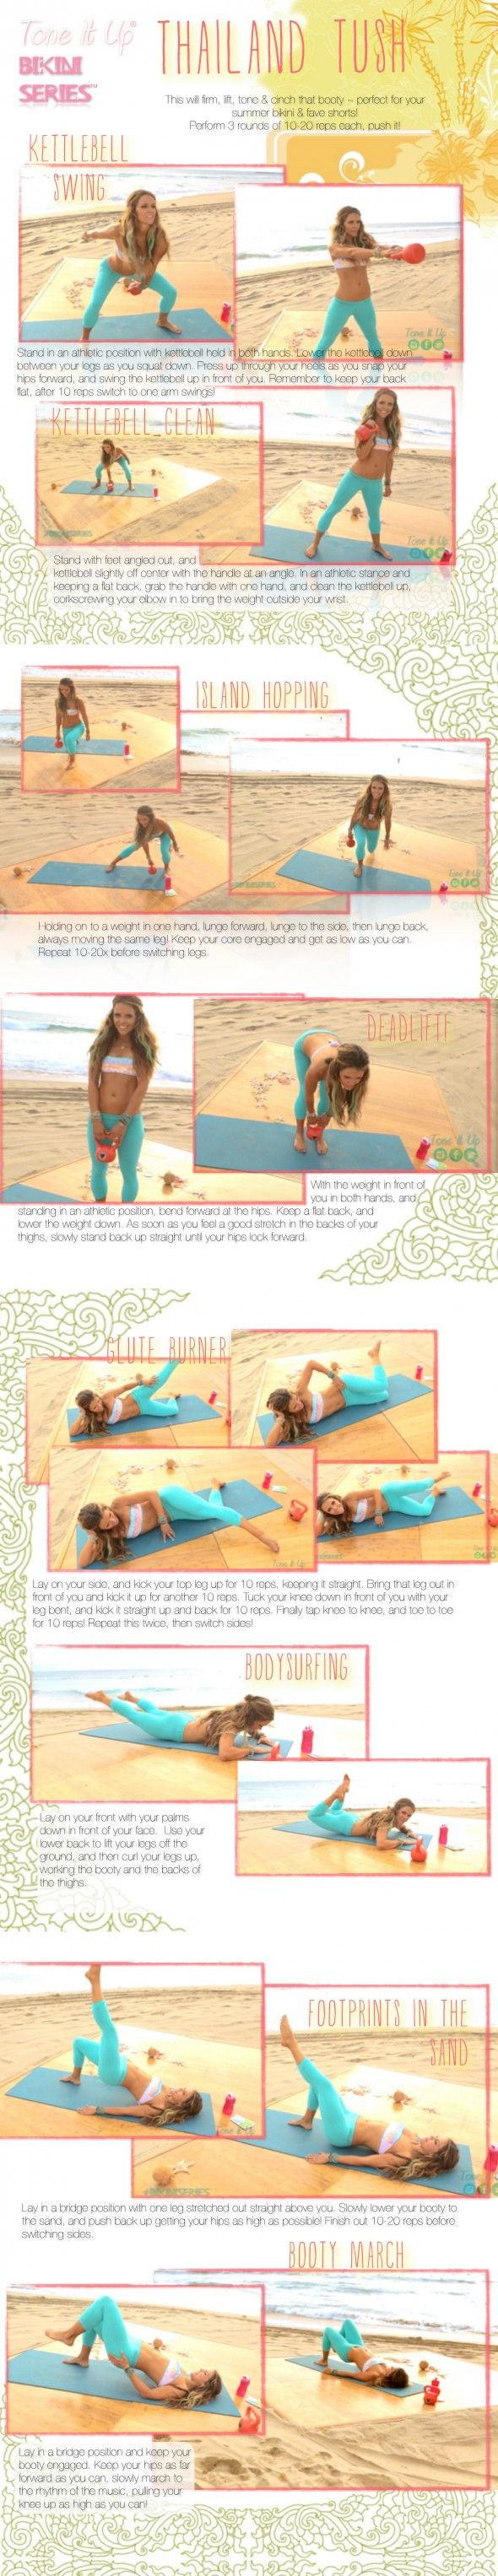 Bikini Booty Time!!! Check out this new Thailand Tush workout from the Tone It Up Girls!